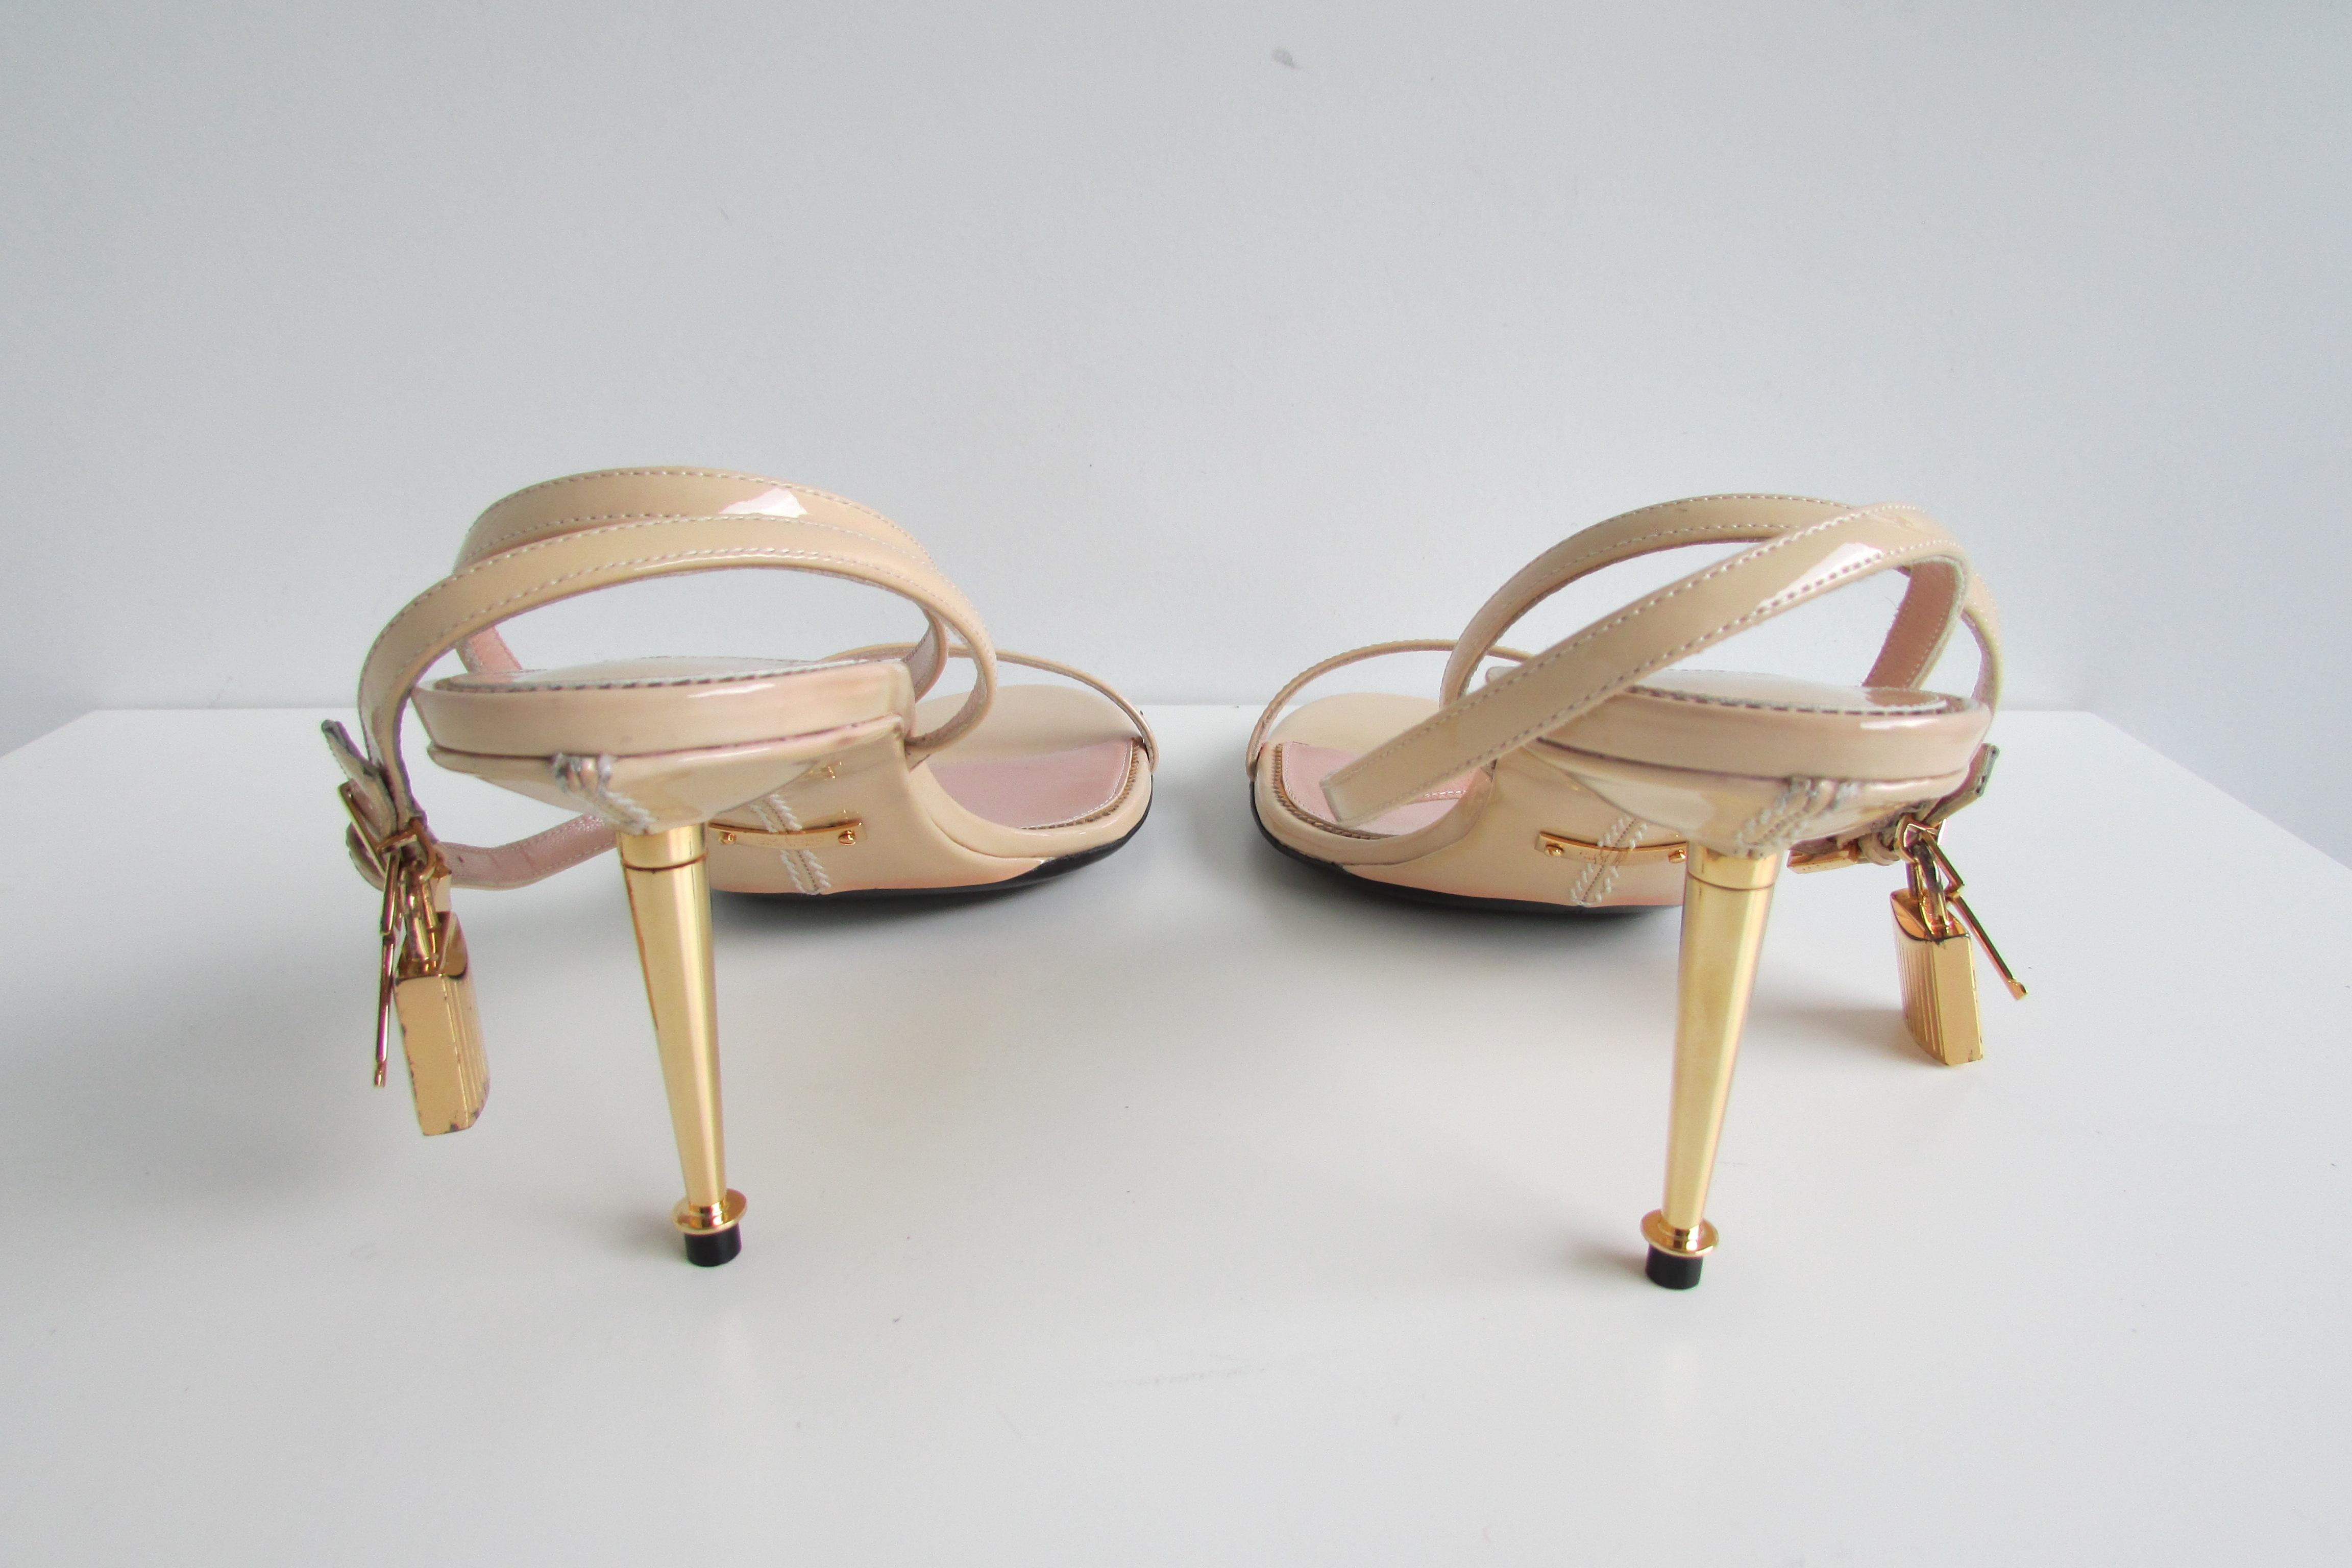 9b651de6e8a Tom Ford Nude Ankle-lock Padlock Sandals Size EU 41 41 41 (Approx ...